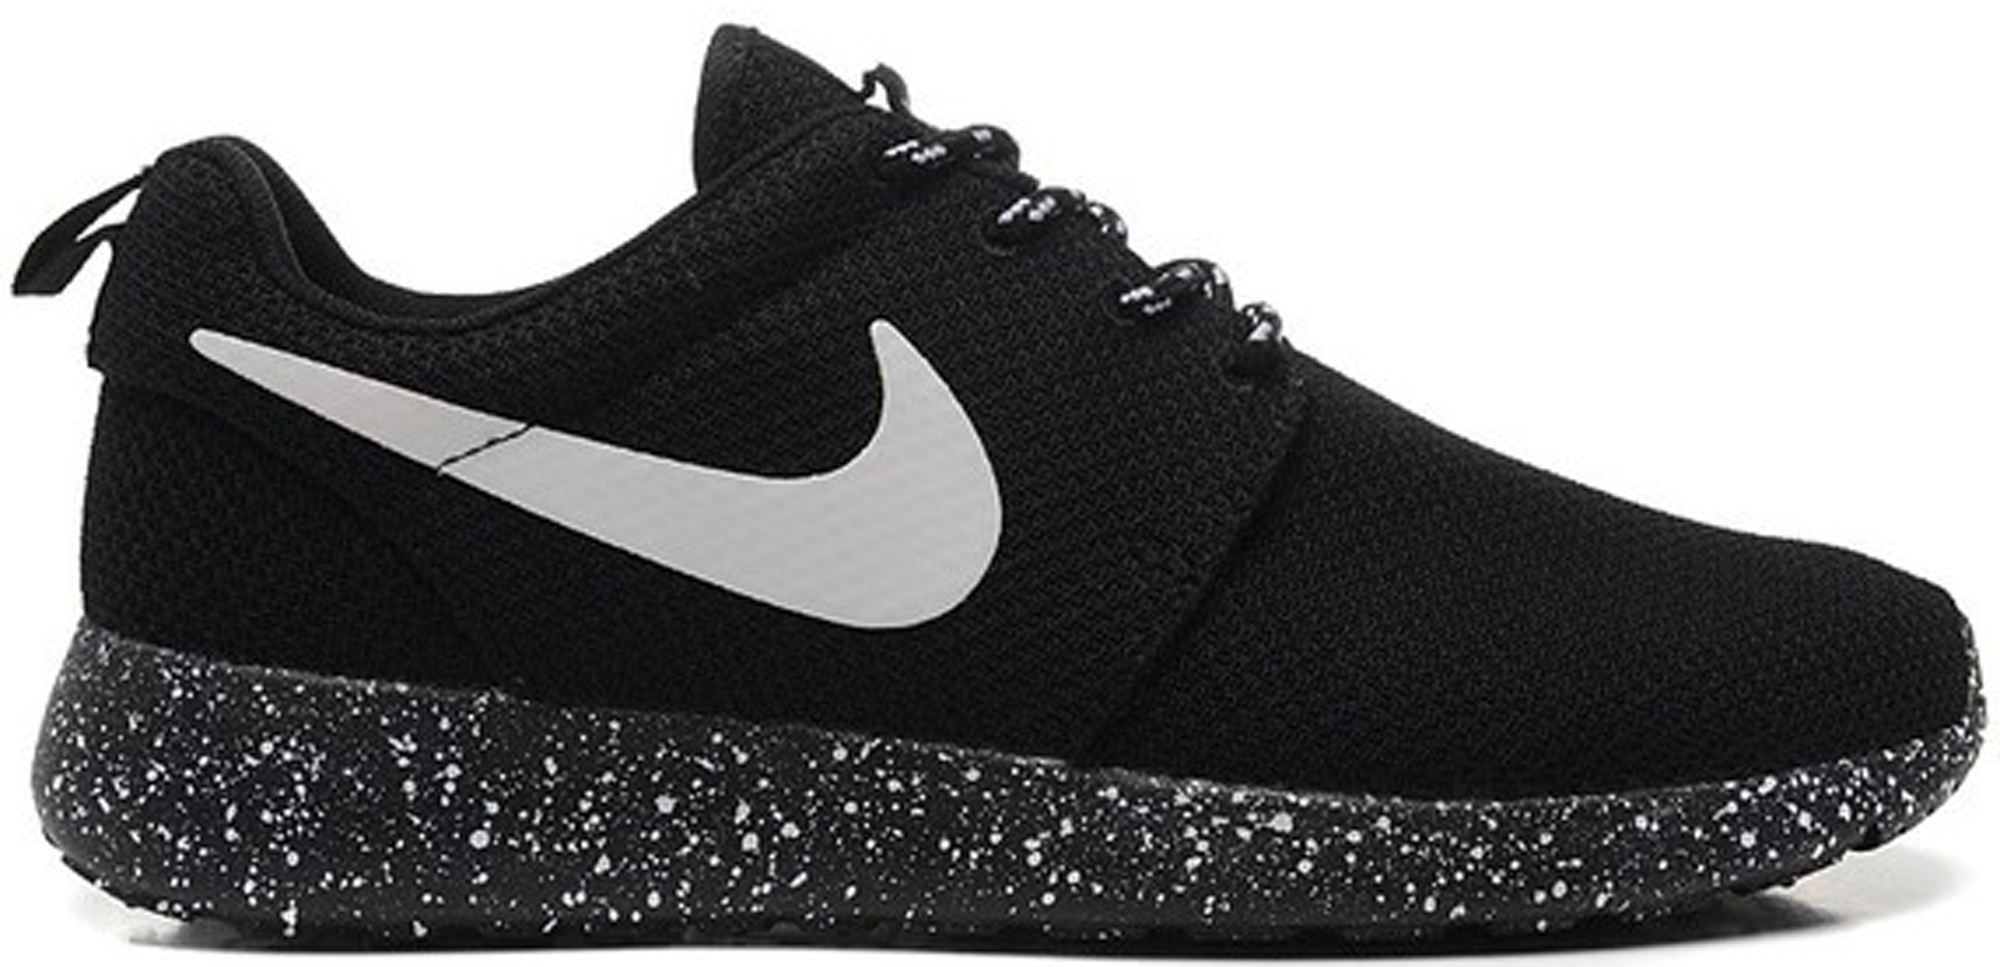 fe3c9174a771 ... coupon for nike roshe run black white speckled sole f7490 07496 ...